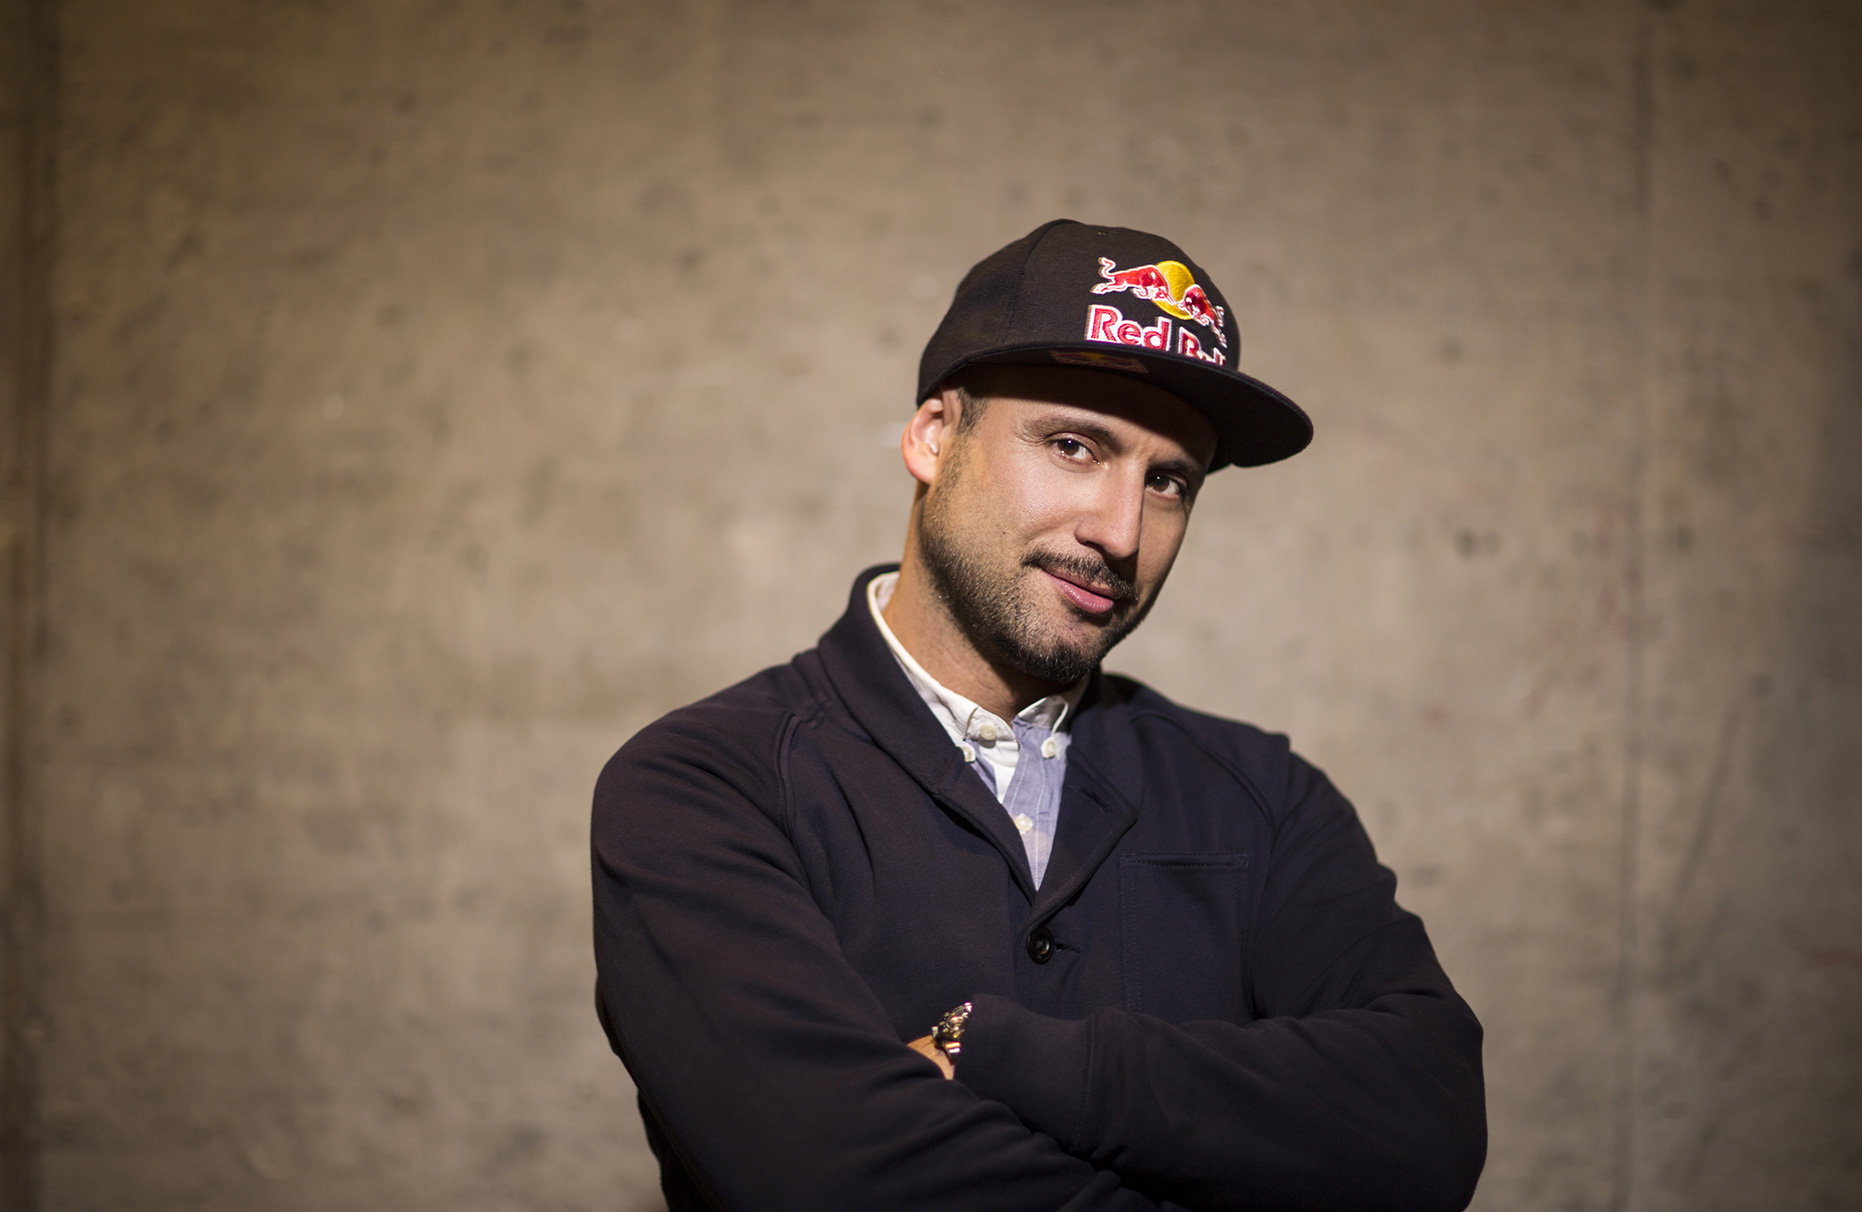 © Dirk Mathesius, Vartan Bassil, Founder Flying Steps, Red Bull Flying Illusion PR, Client Red Bull, Berlin, Tempodrom